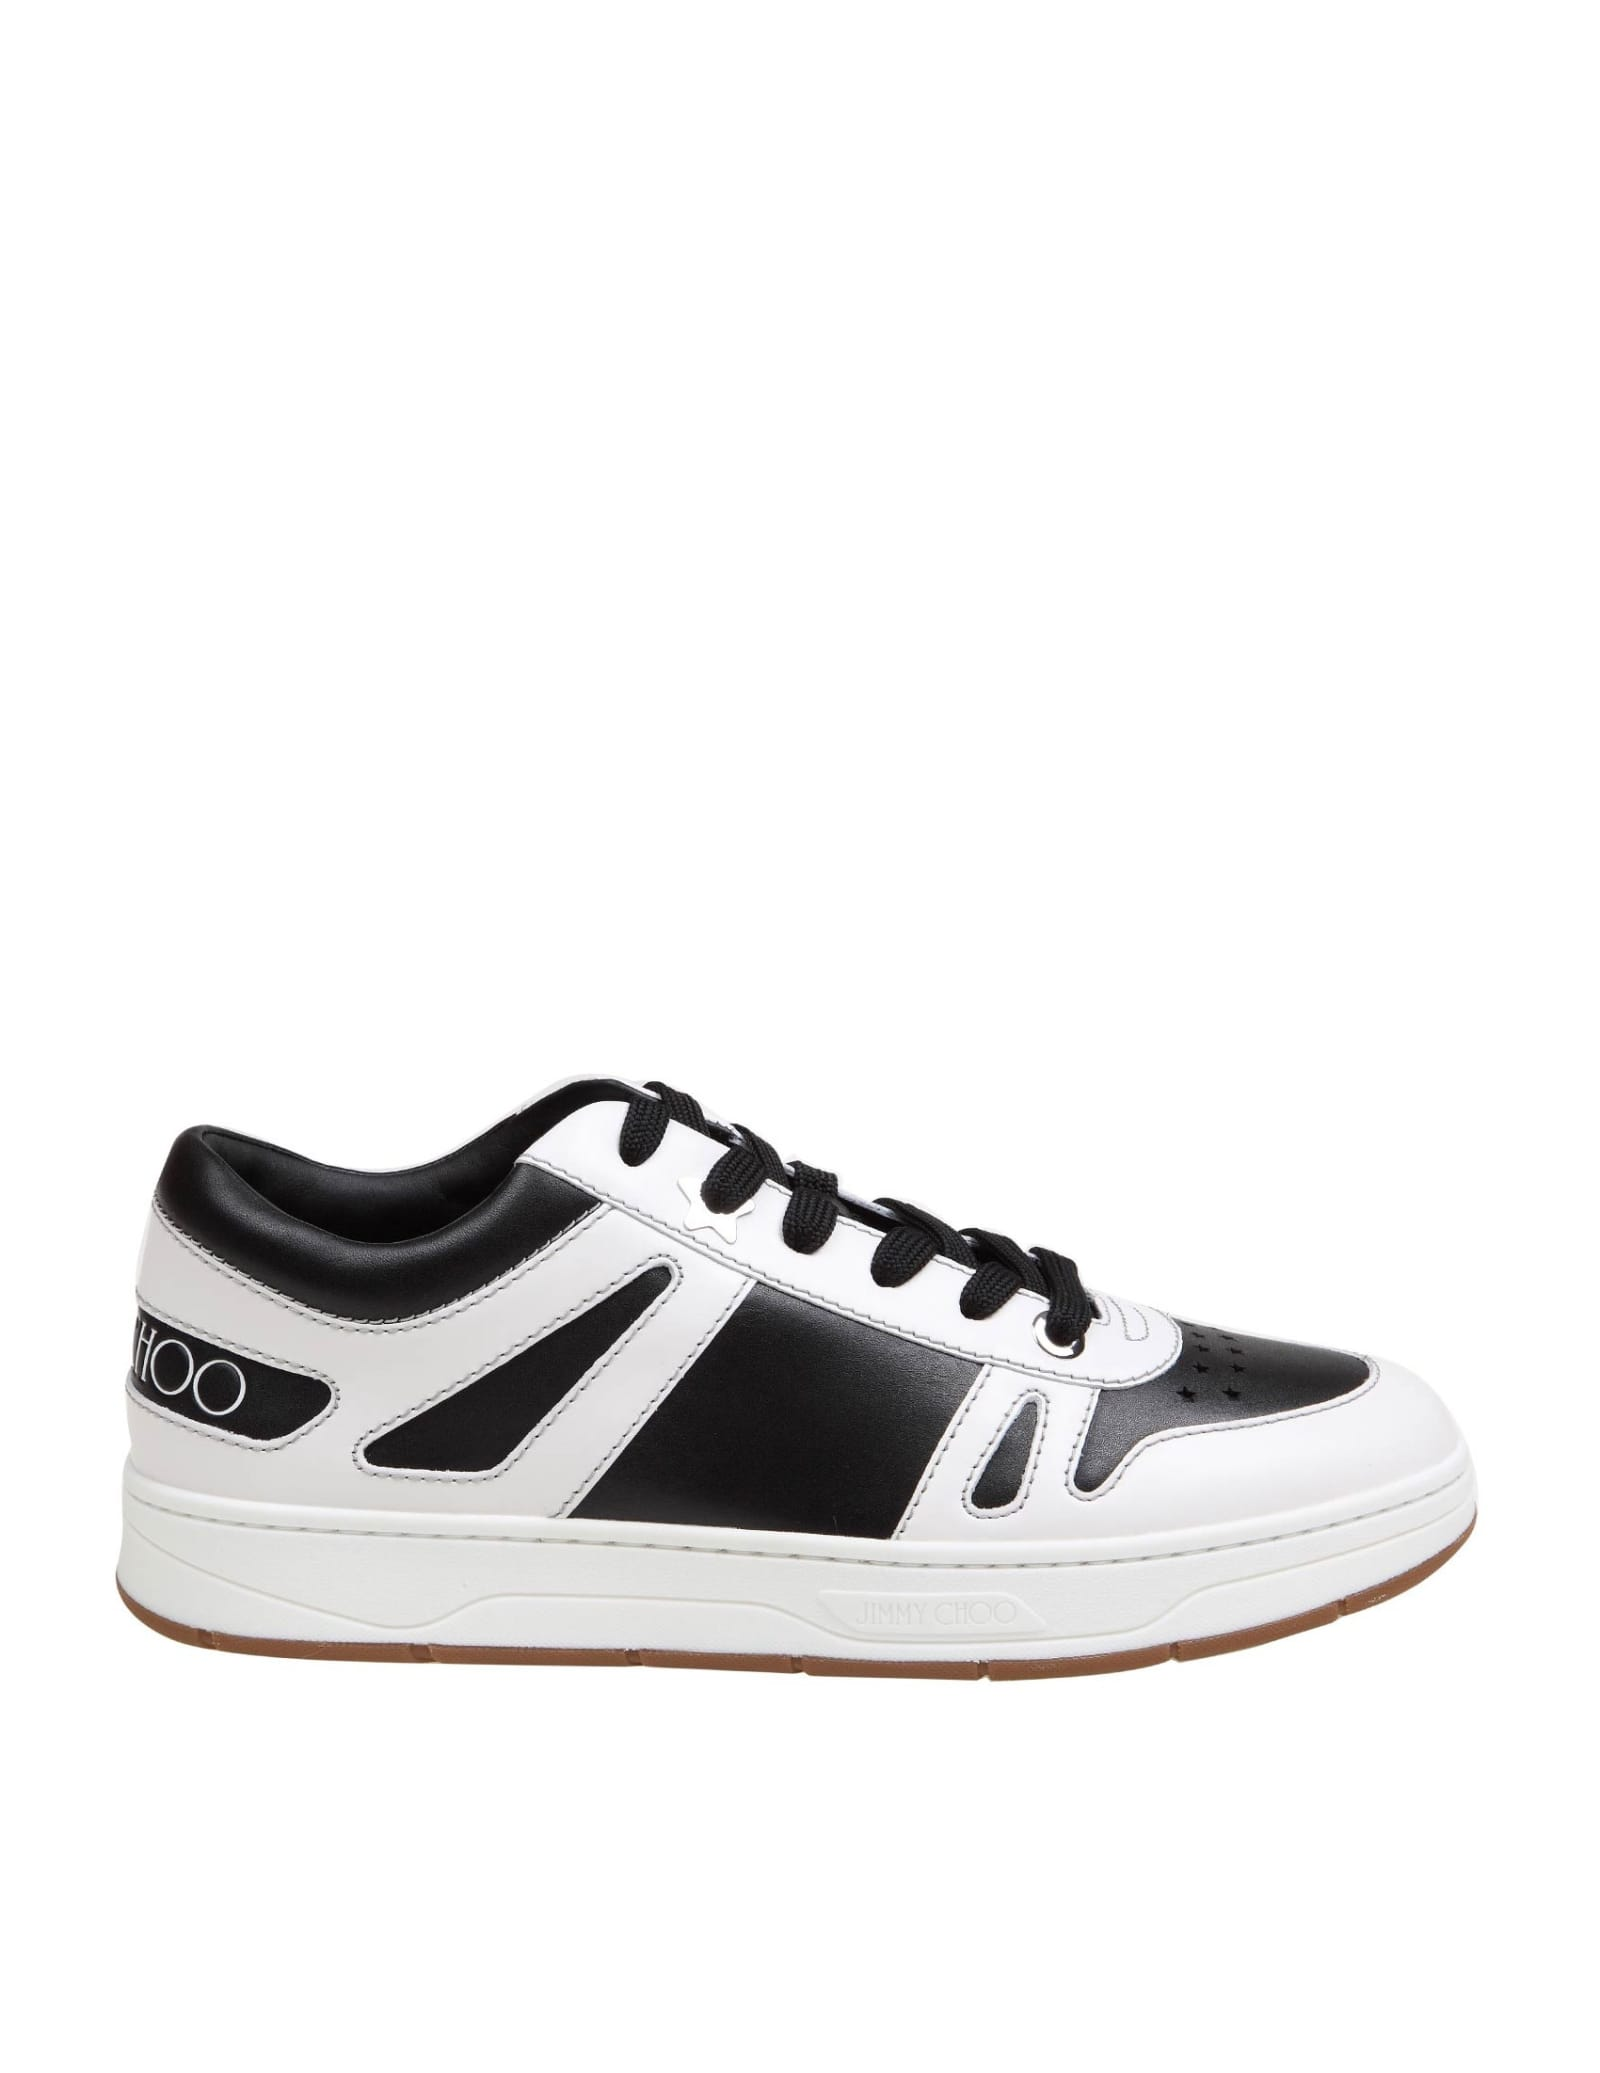 Jimmy Choo HAWAII / M LEATHER SNEAKERS